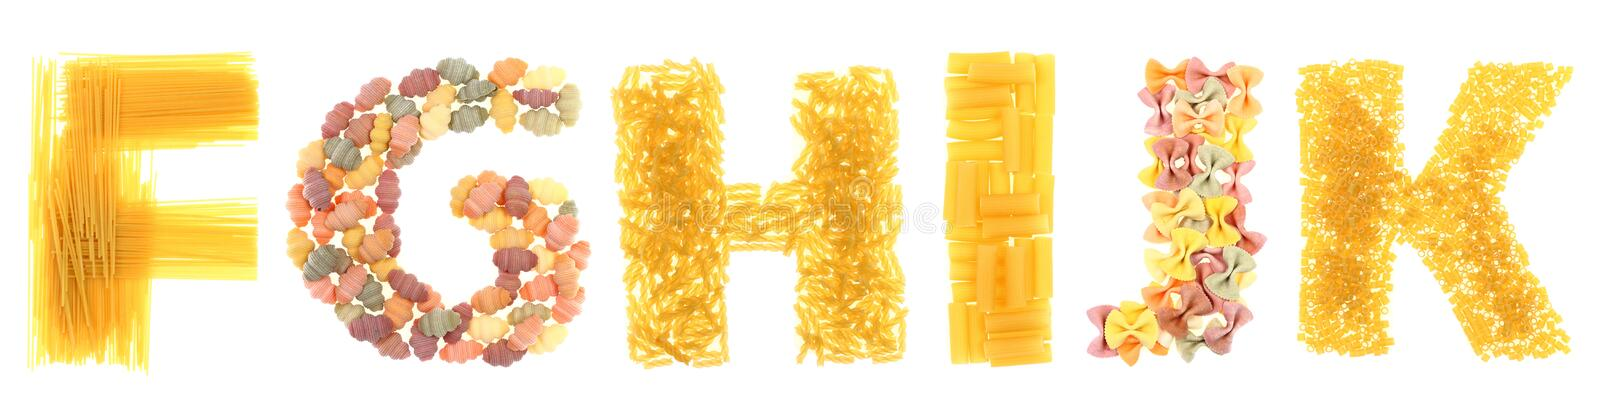 Pasta letters stock photos